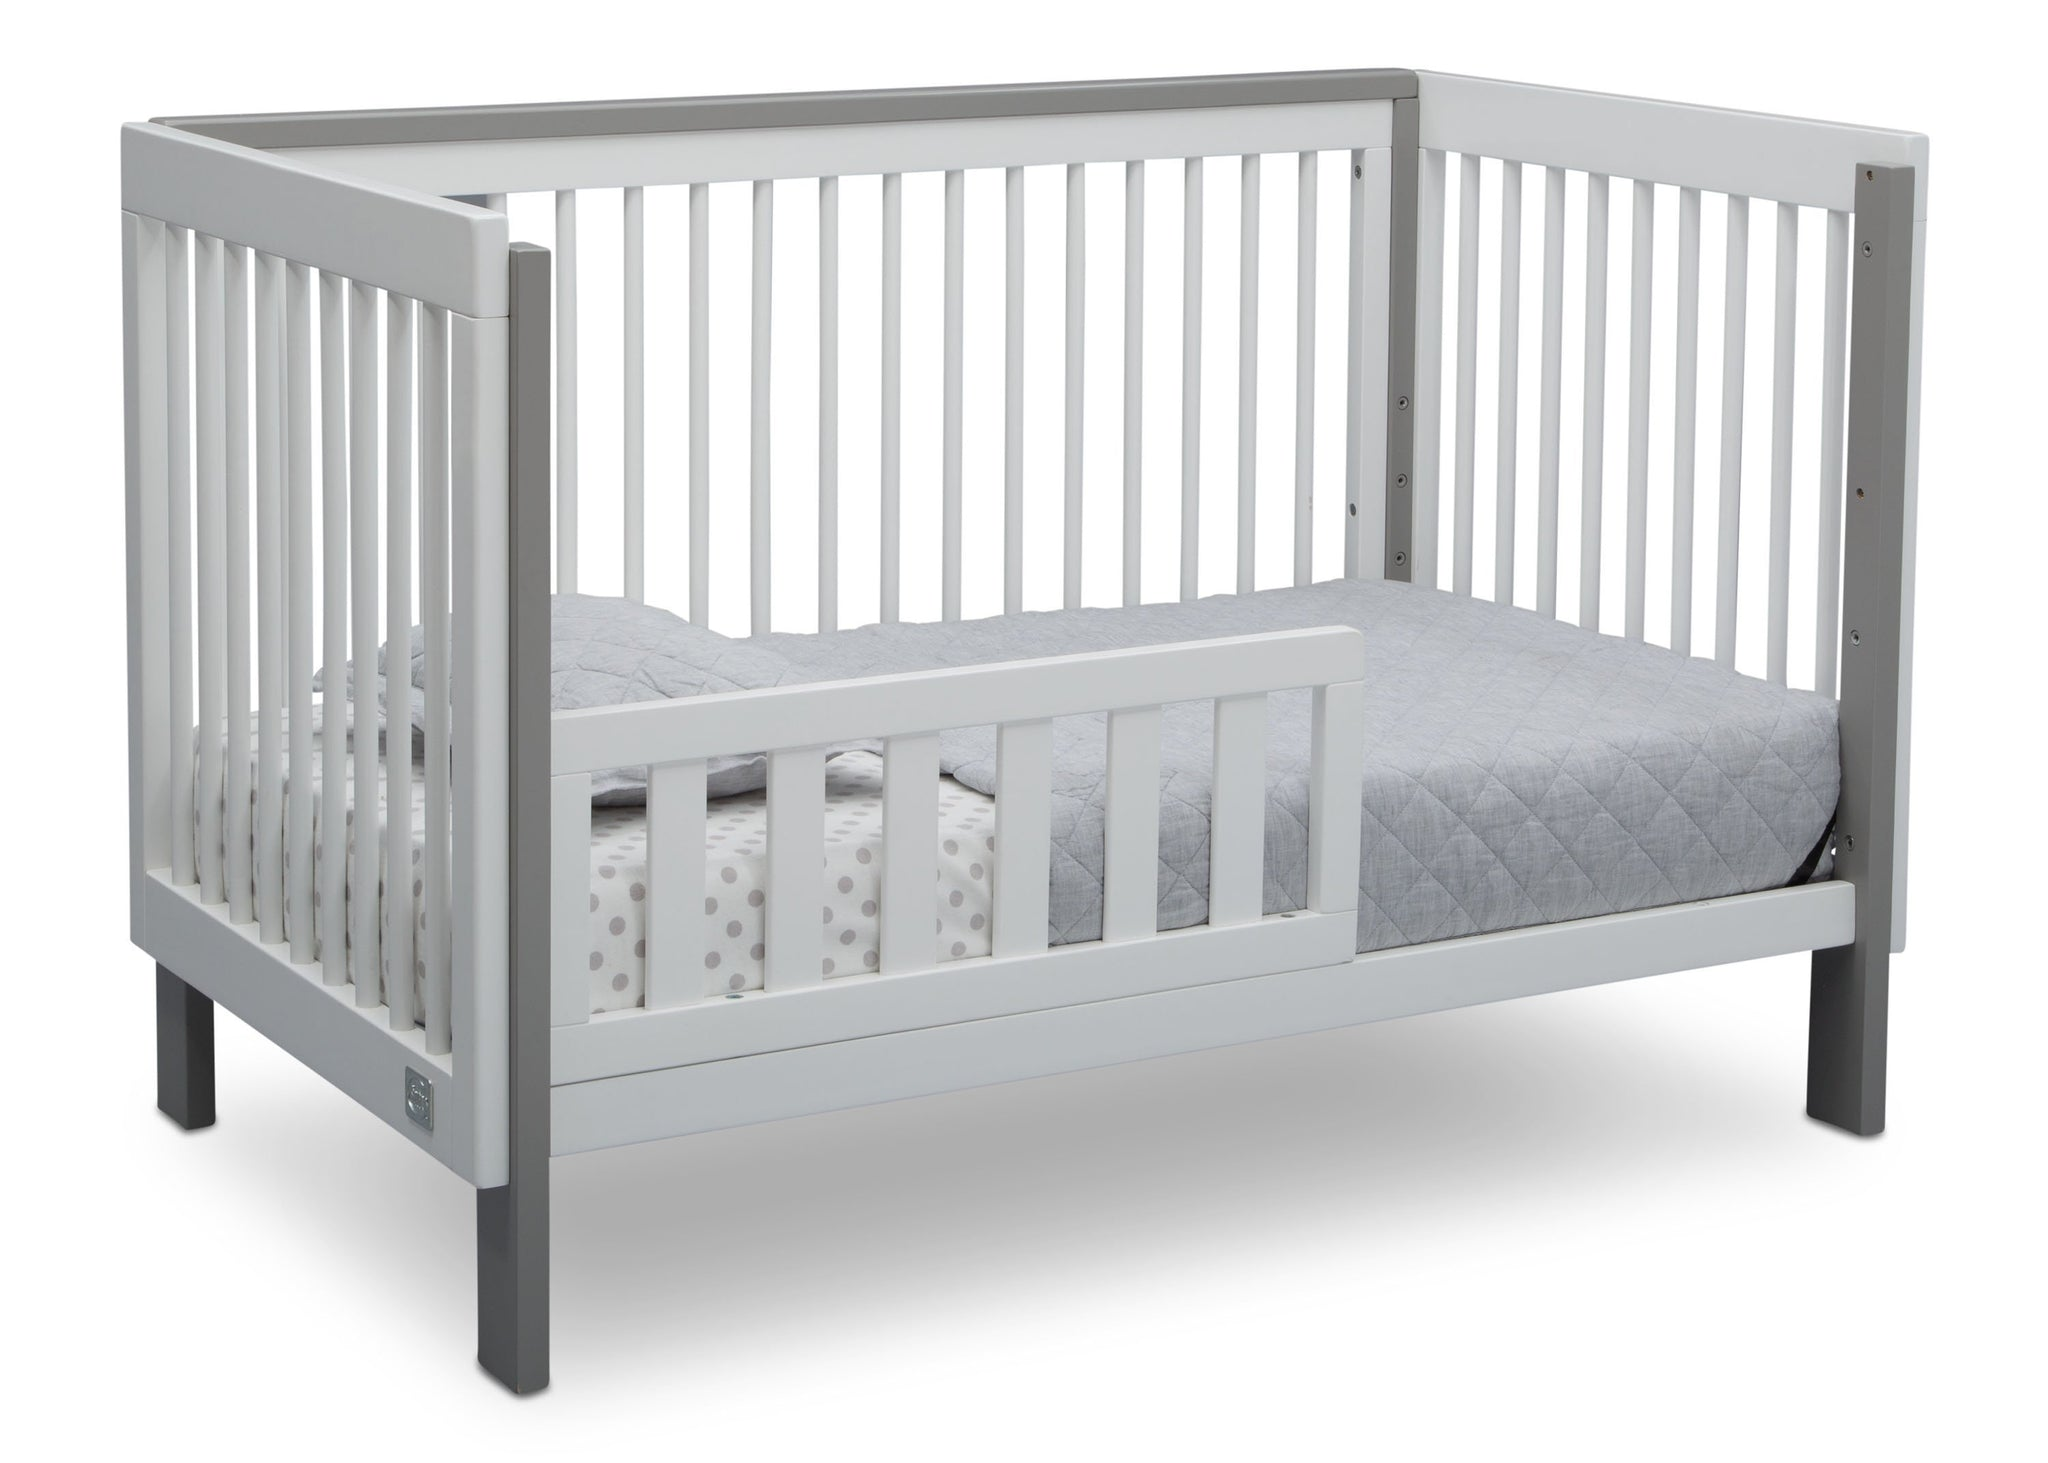 Serta Fremont 3-in-1 Convertible Crib Bianca White with Grey (166) Toddler Bed c4c